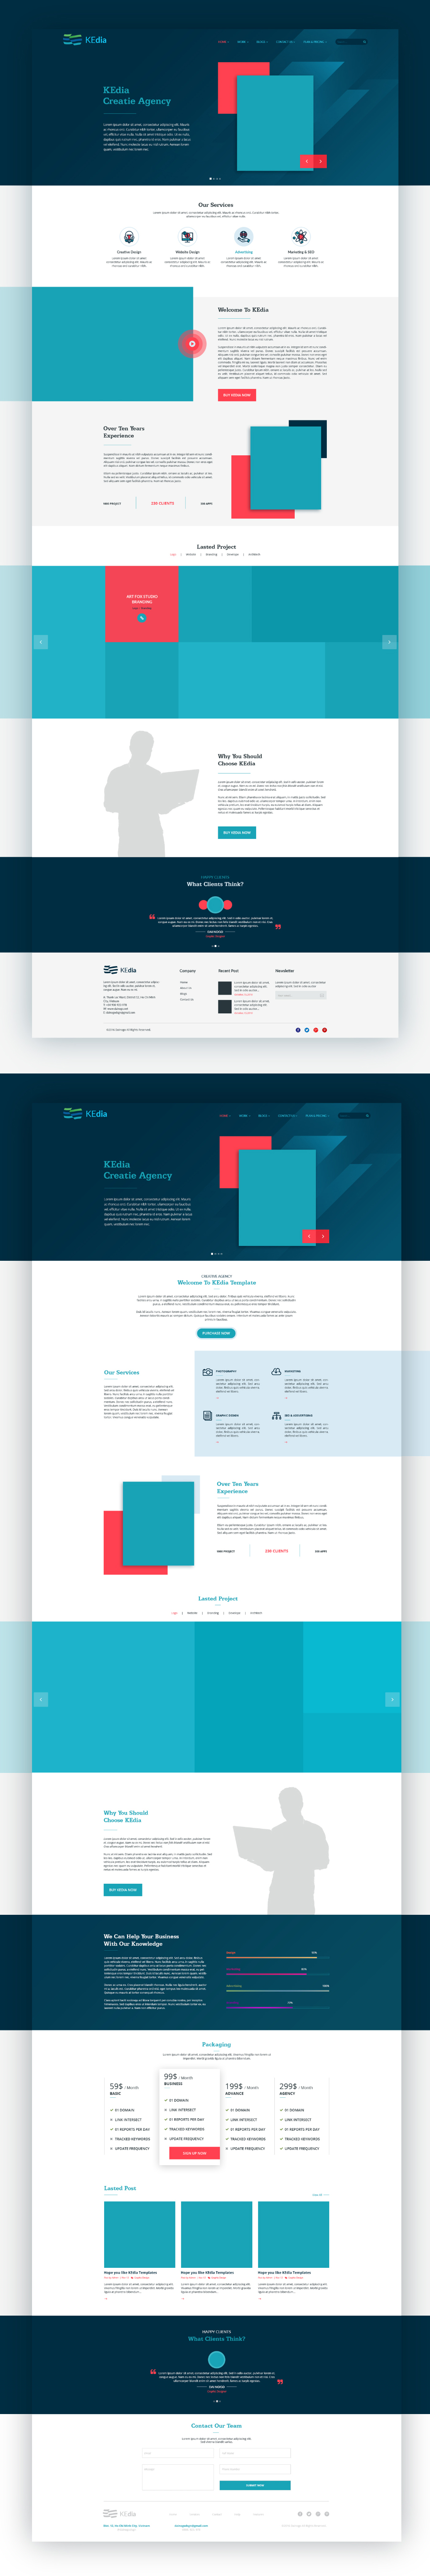 Kedia Website Free PSD Template